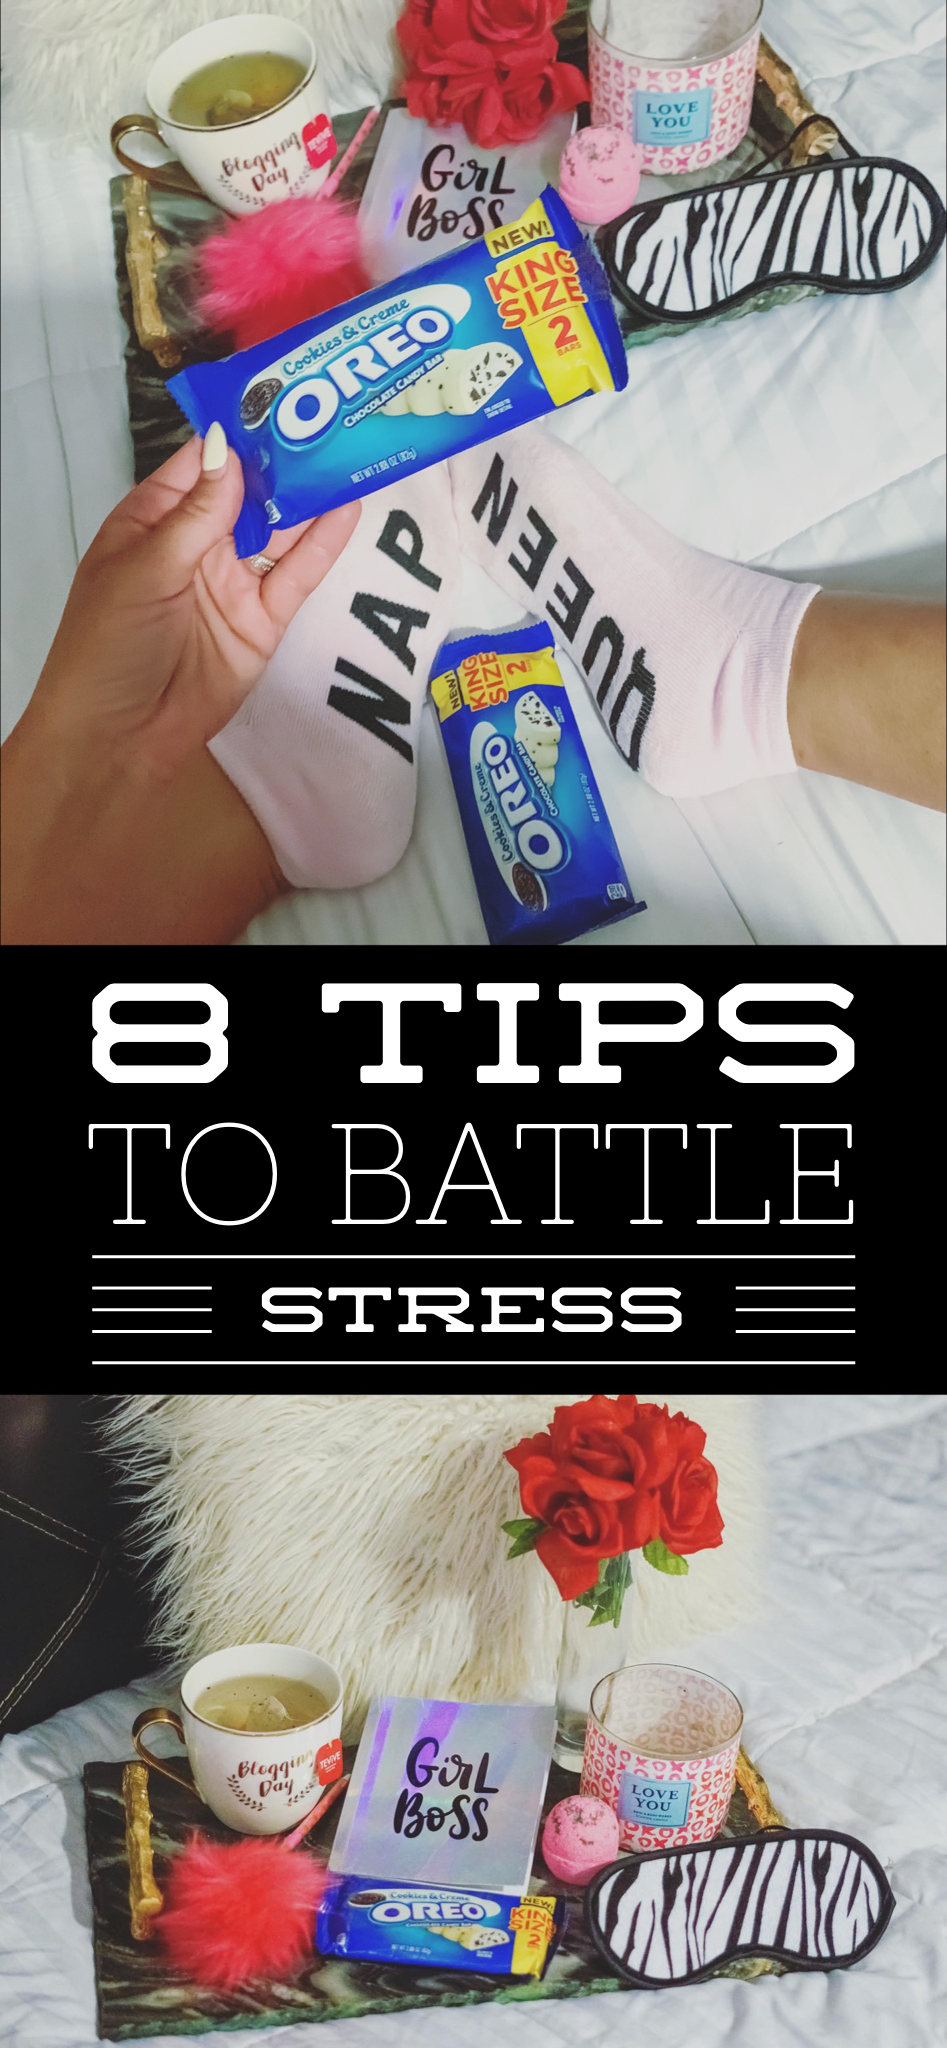 8 Tips To Battle Stress